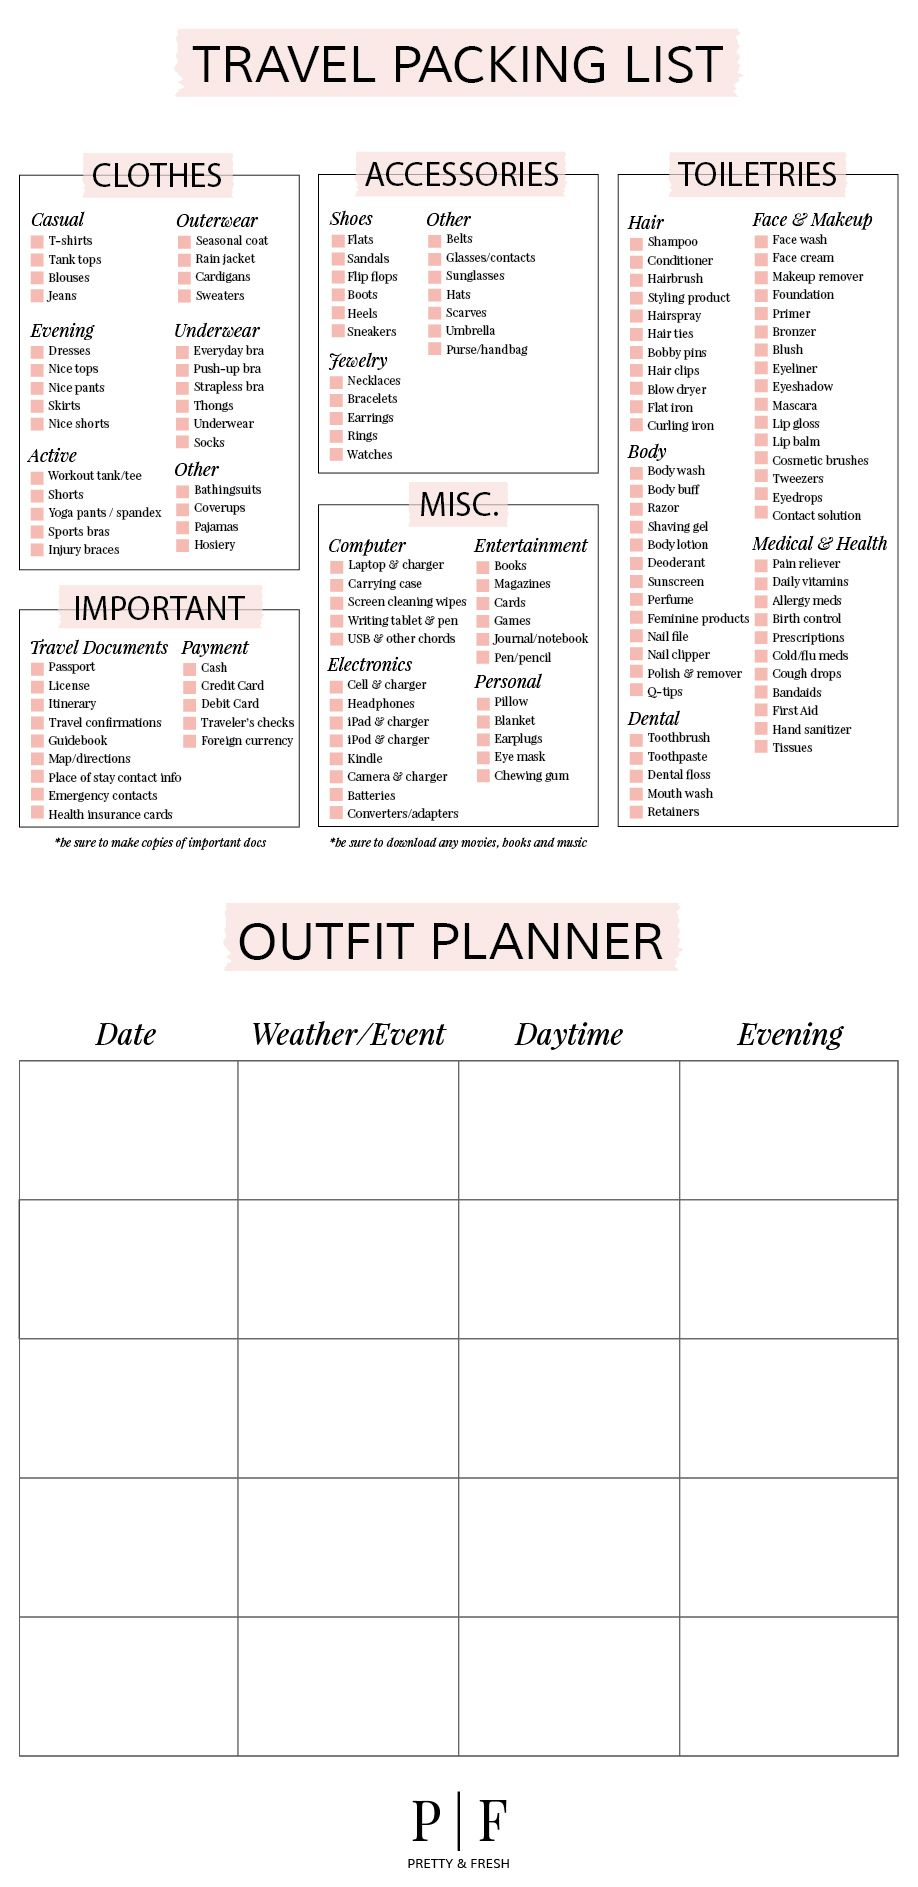 packing checklist and outfit planner does not take you to the list